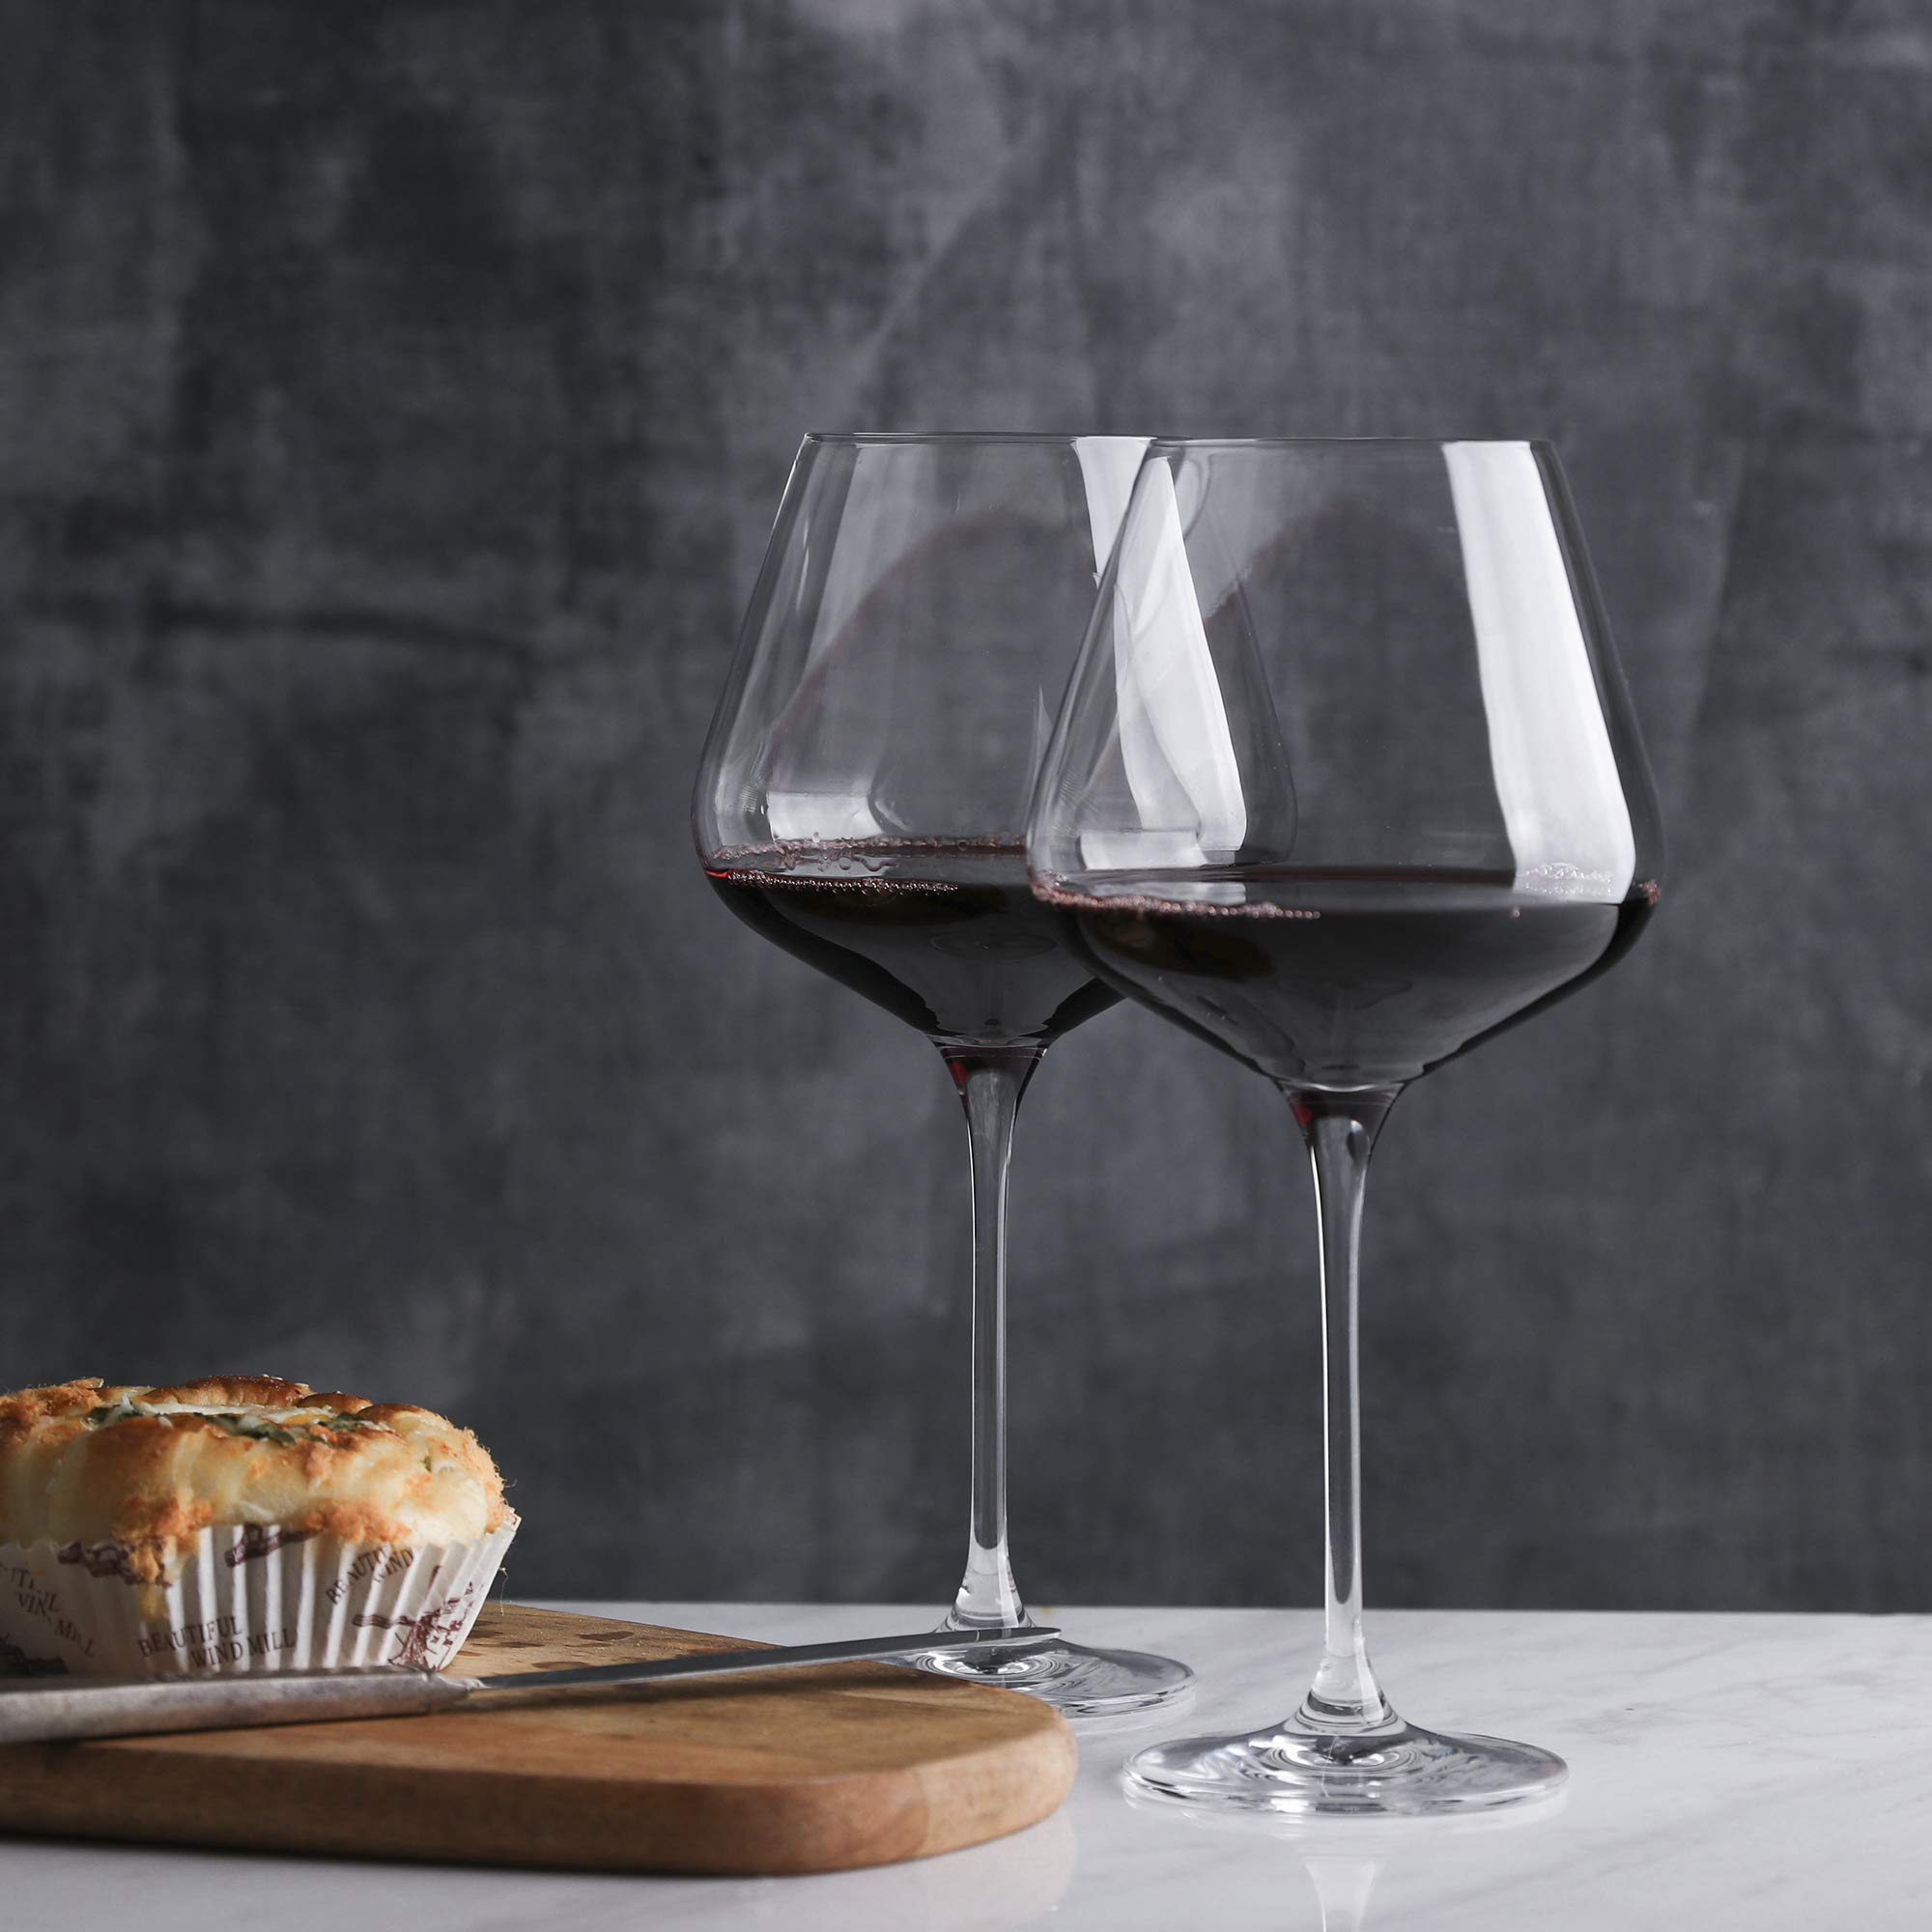 Red Wine Glasses - Crystal Glass - Lead Free - Wine Glasses Set of 4 (29 Ounce) by WH Housewares (Image #4)